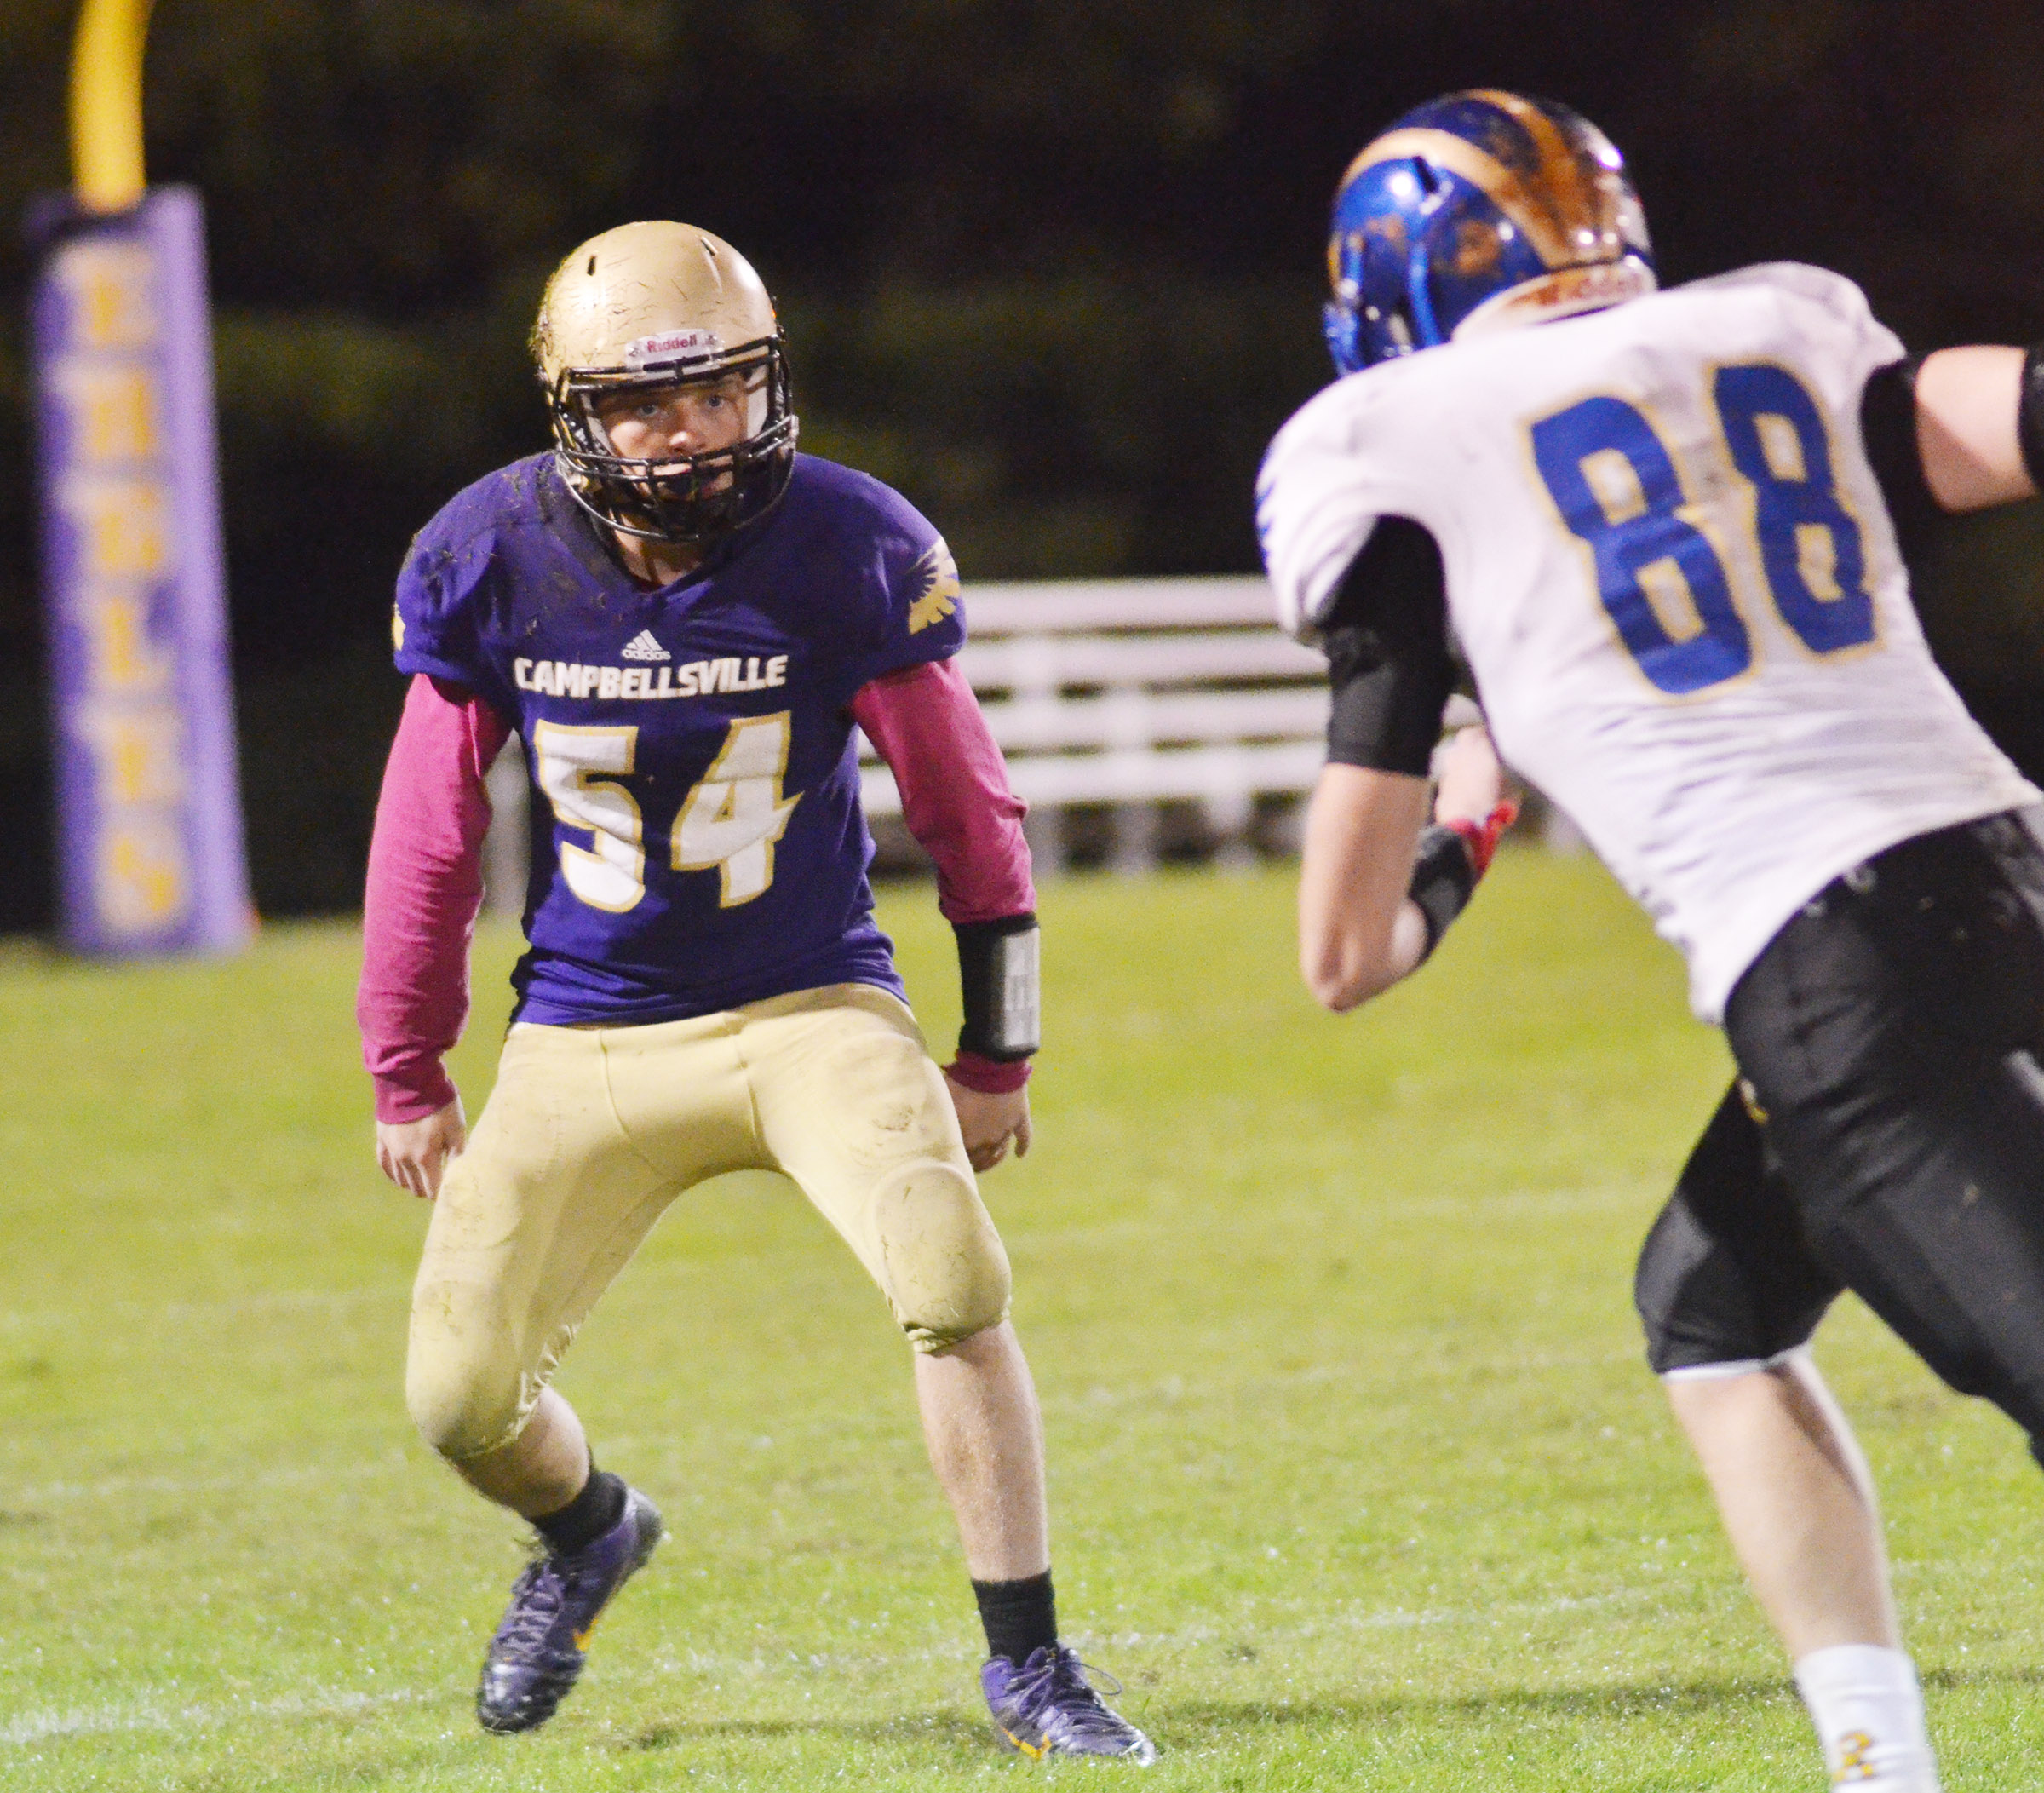 CHS sophomore Dakota Reardon gets ready to tackle.